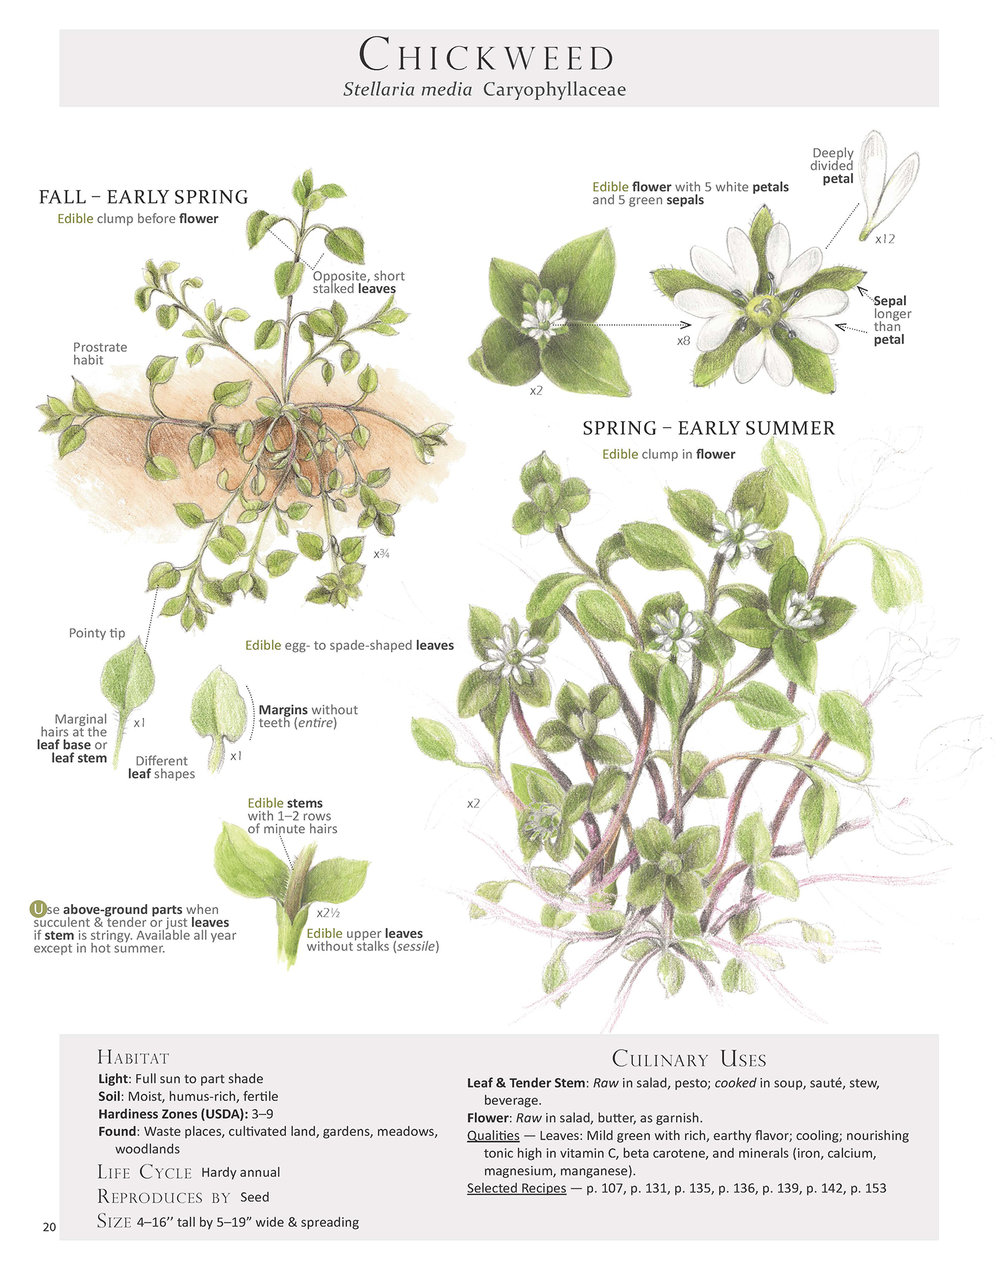 To help with id harvest and use here is the Nettle page (1of 2) from our book Foraging & Feasting: A Field Guide and Wild Food Cookbook by Dina Falconi, illustrated by Wendy Hollender. Book Link:  http://bit.ly/1Auh44Q